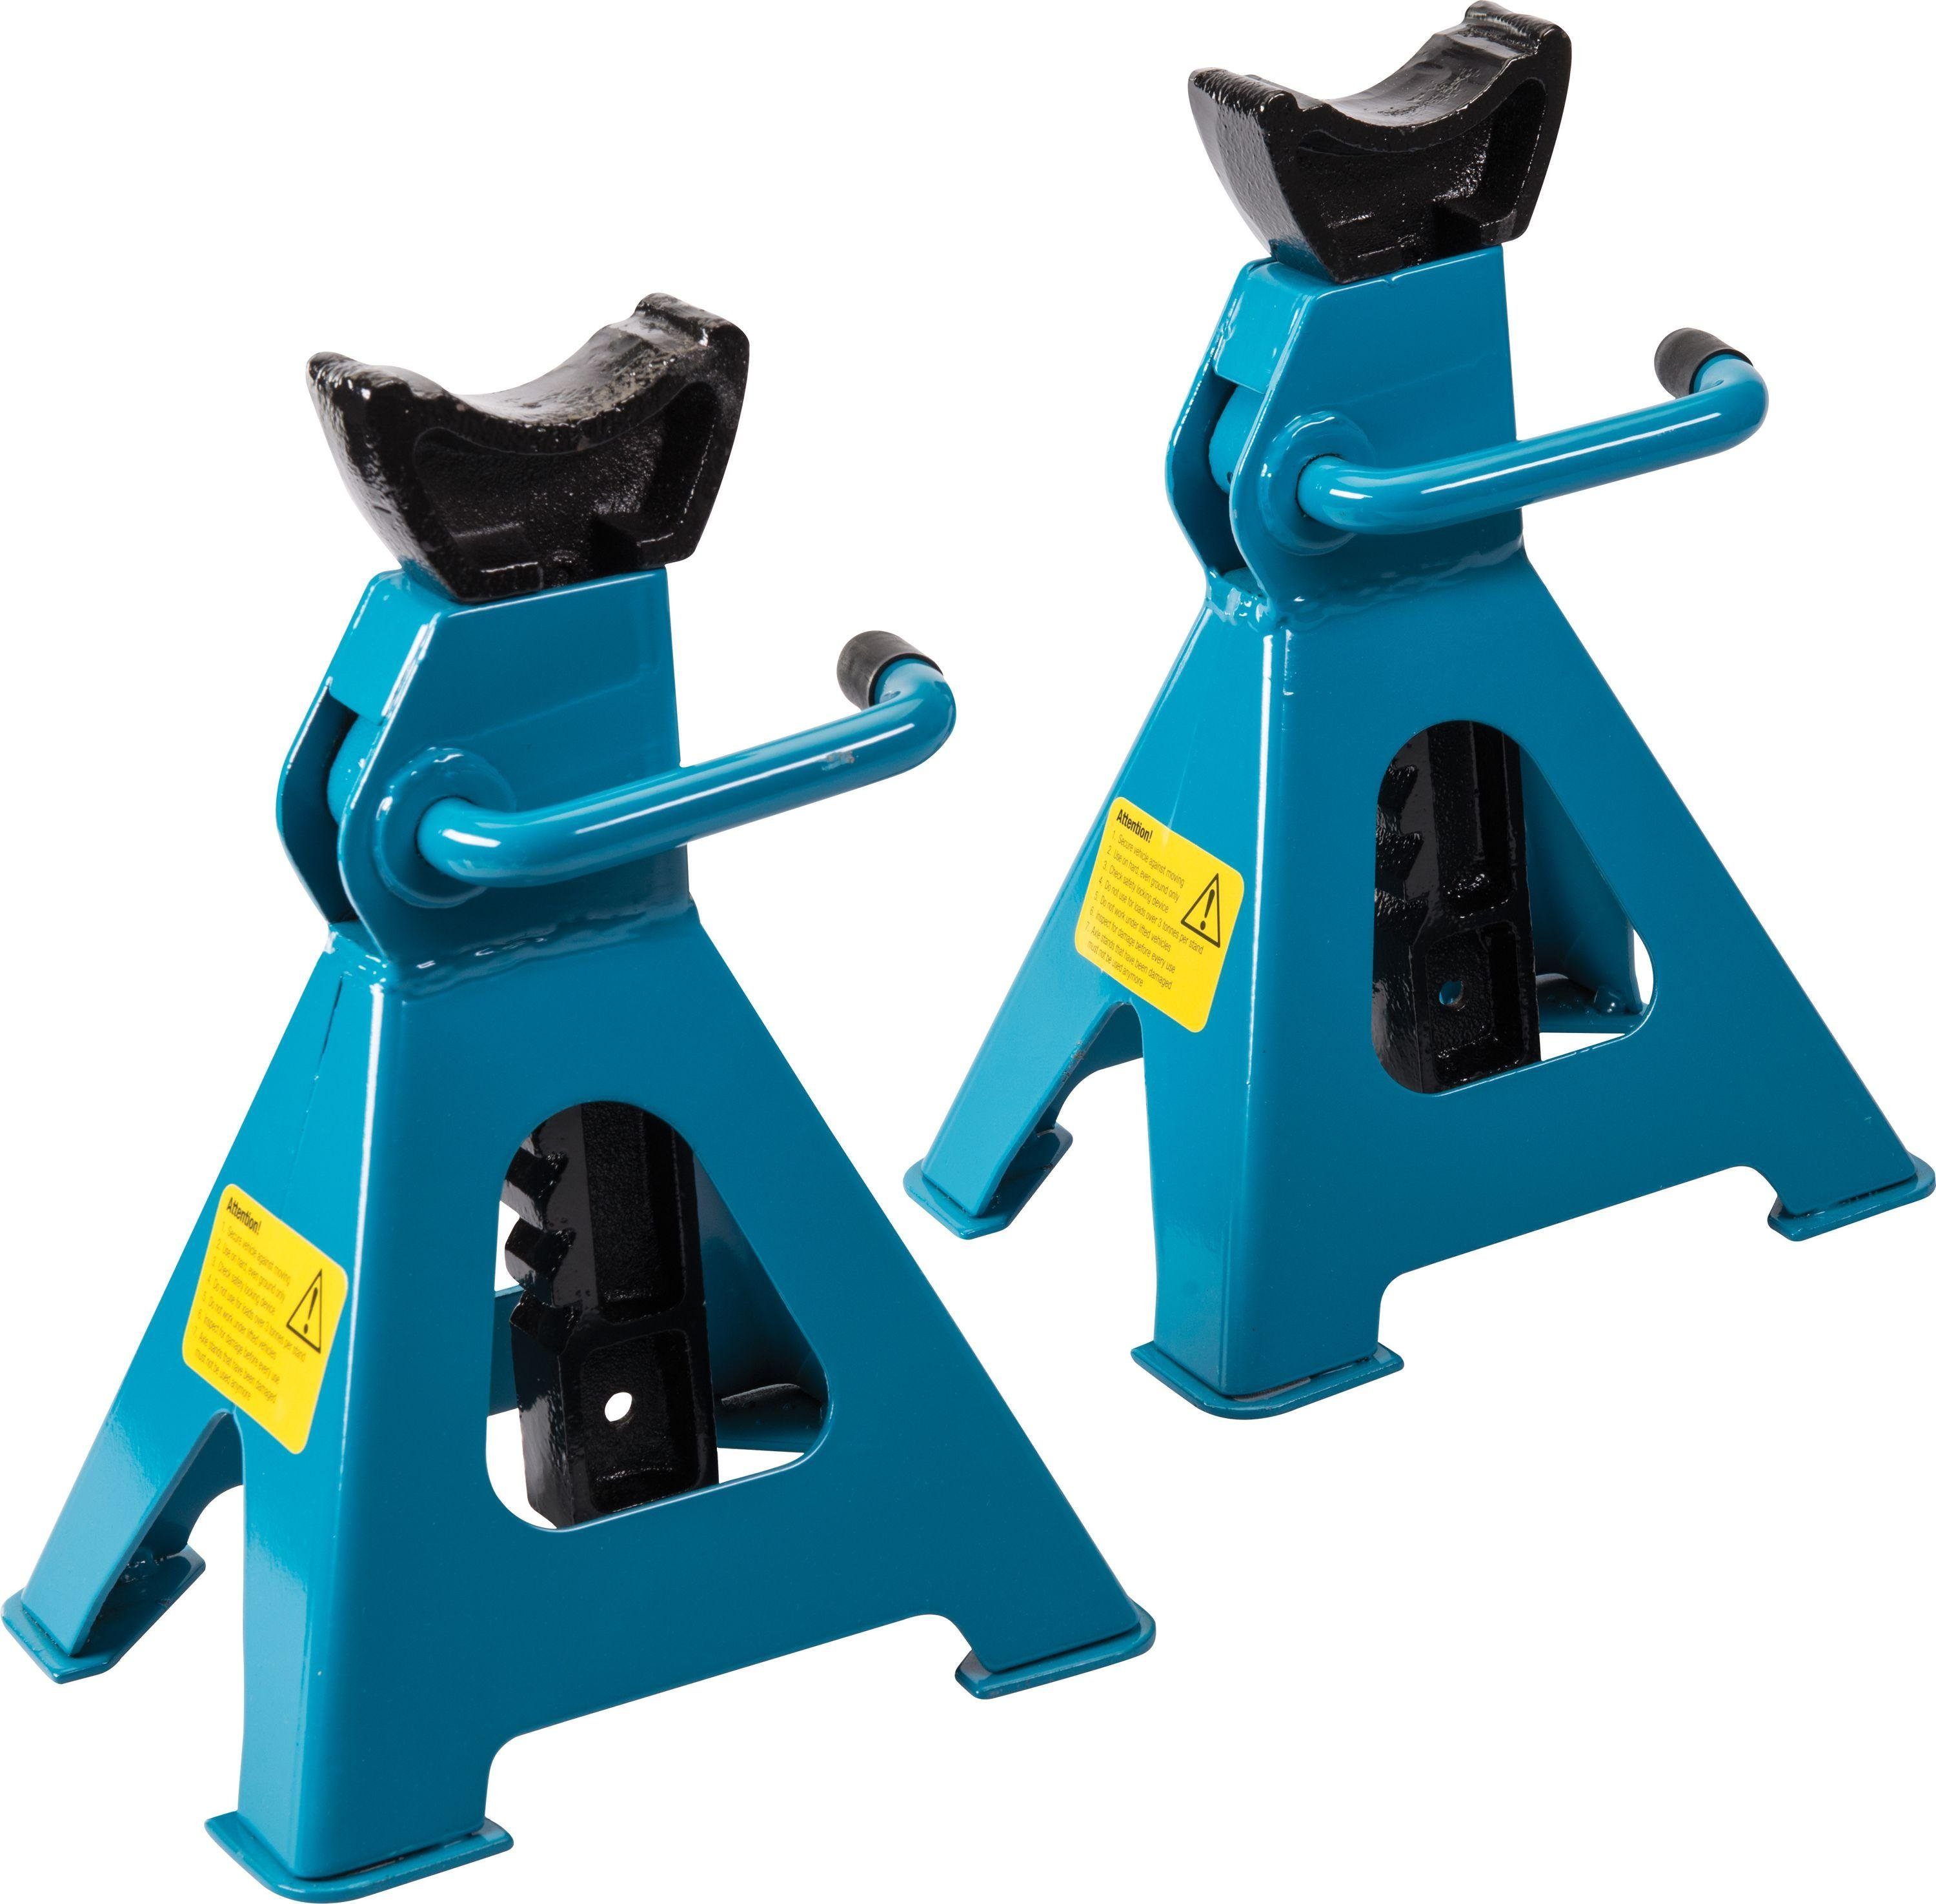 Image of Silverline 3 Tonne Axle Stands - Set of 2.